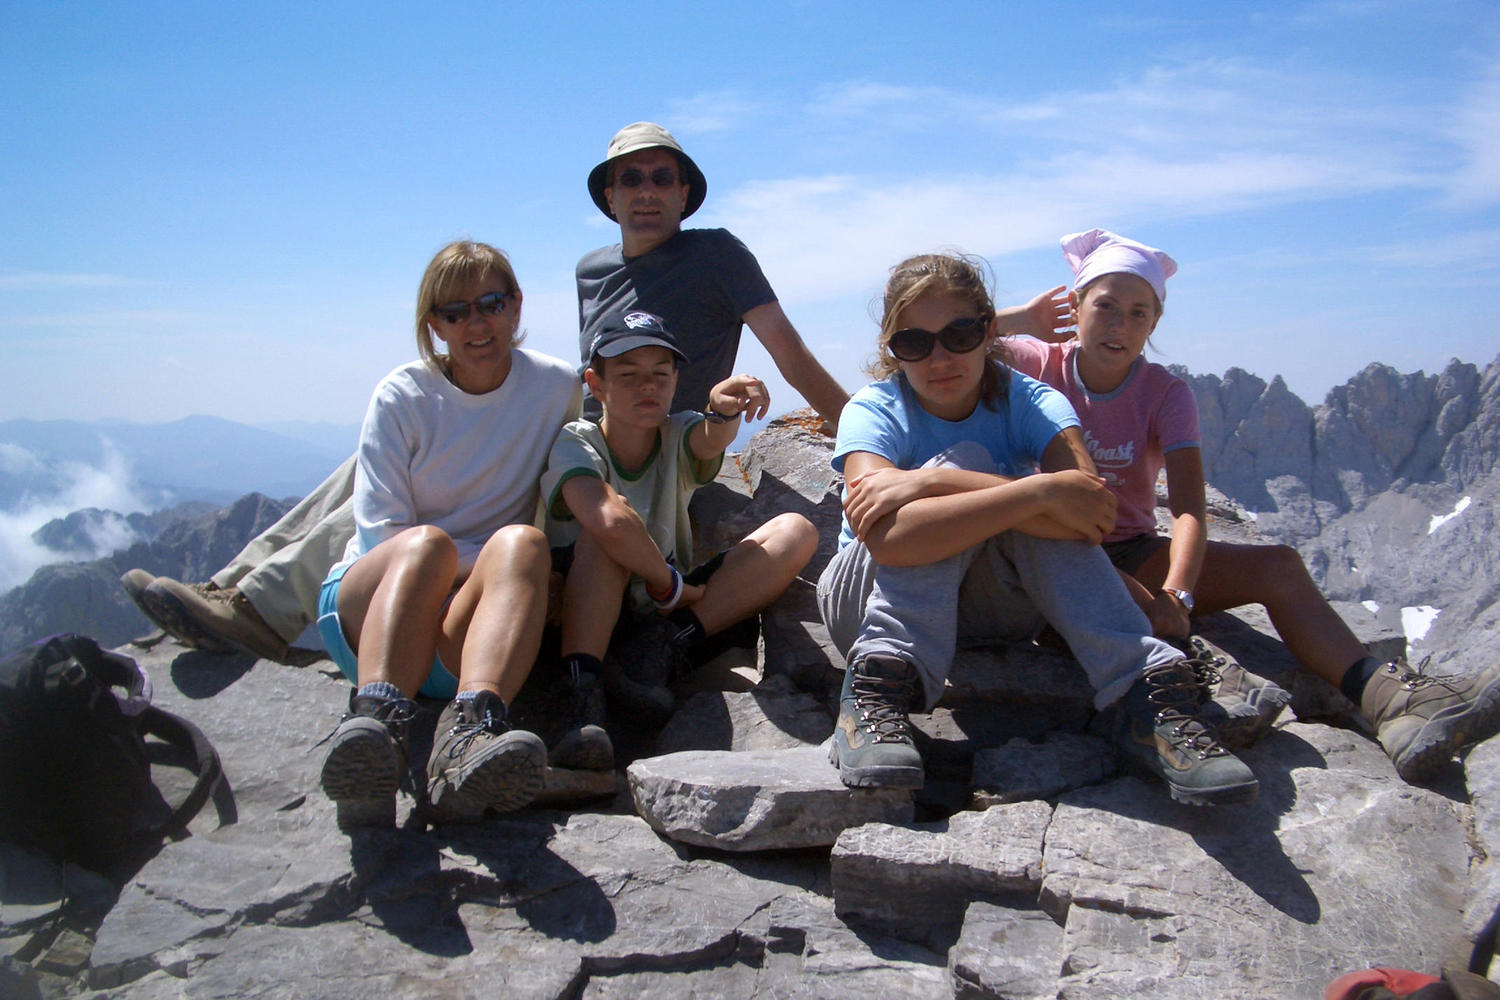 Family on top of Horcados Rojos peak in the Picos de Europa